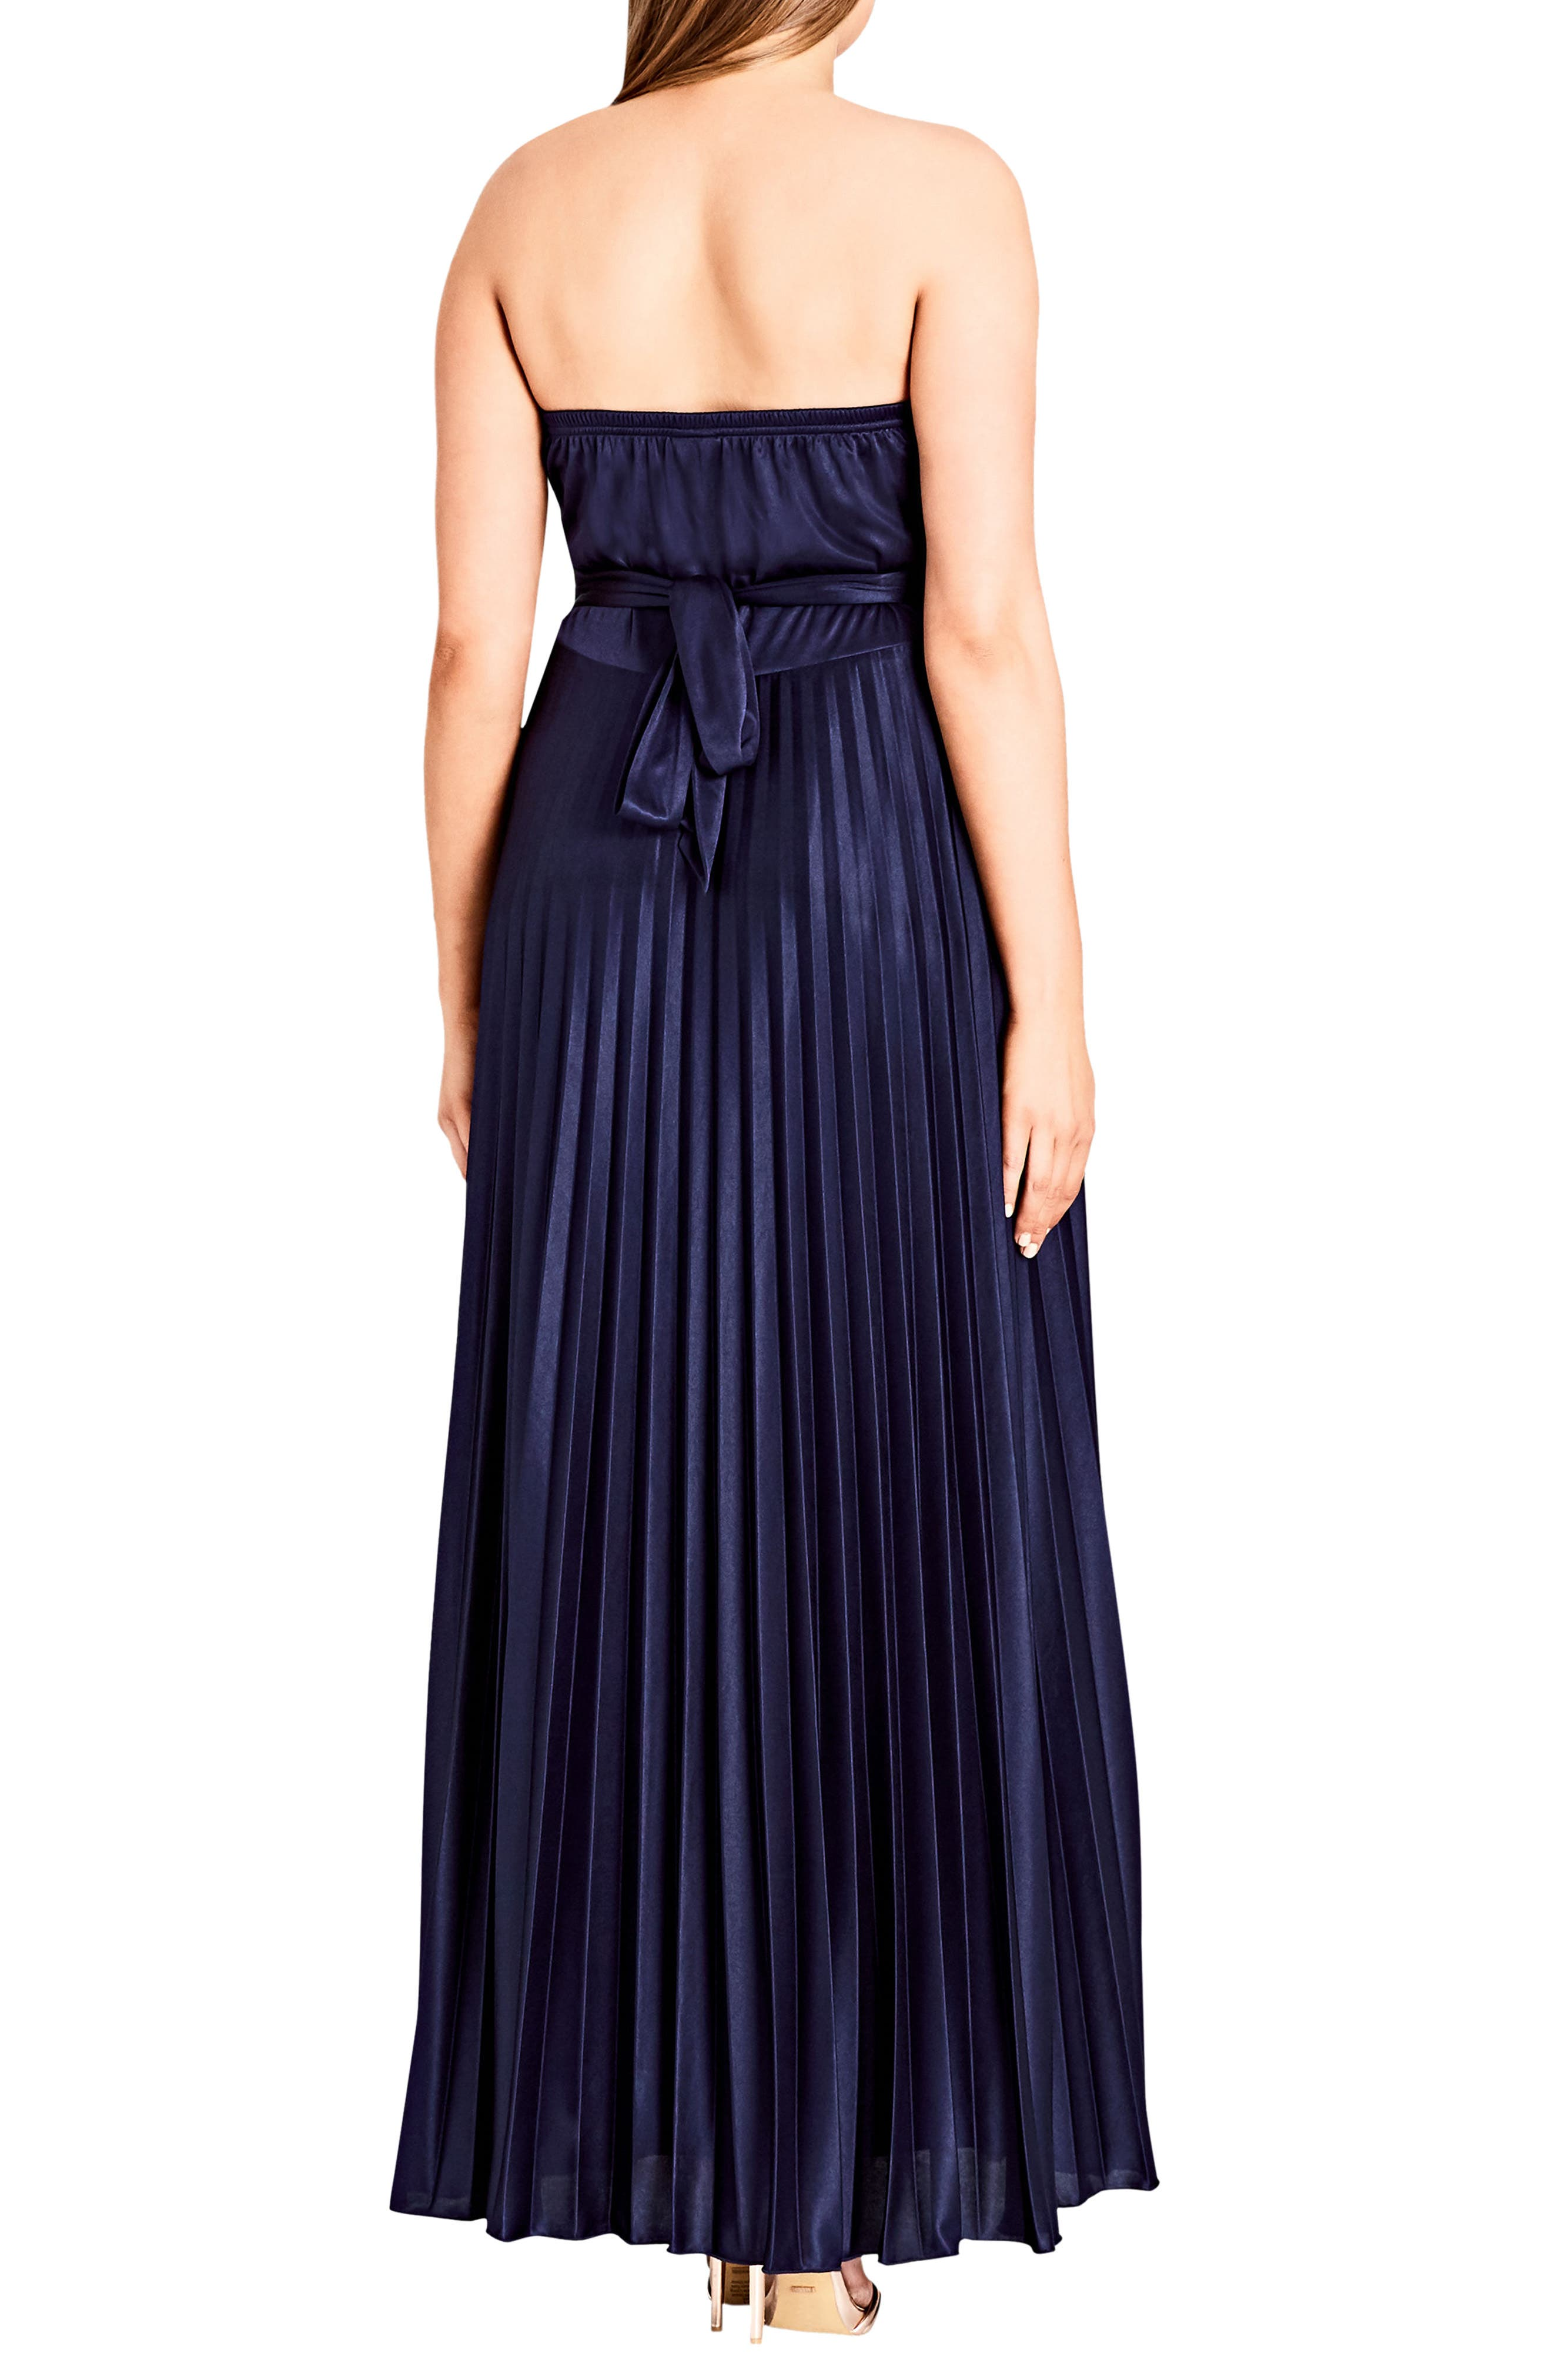 CITY CHIC, Helena Embellished Strapless Maxi Dress, Alternate thumbnail 2, color, NAVY